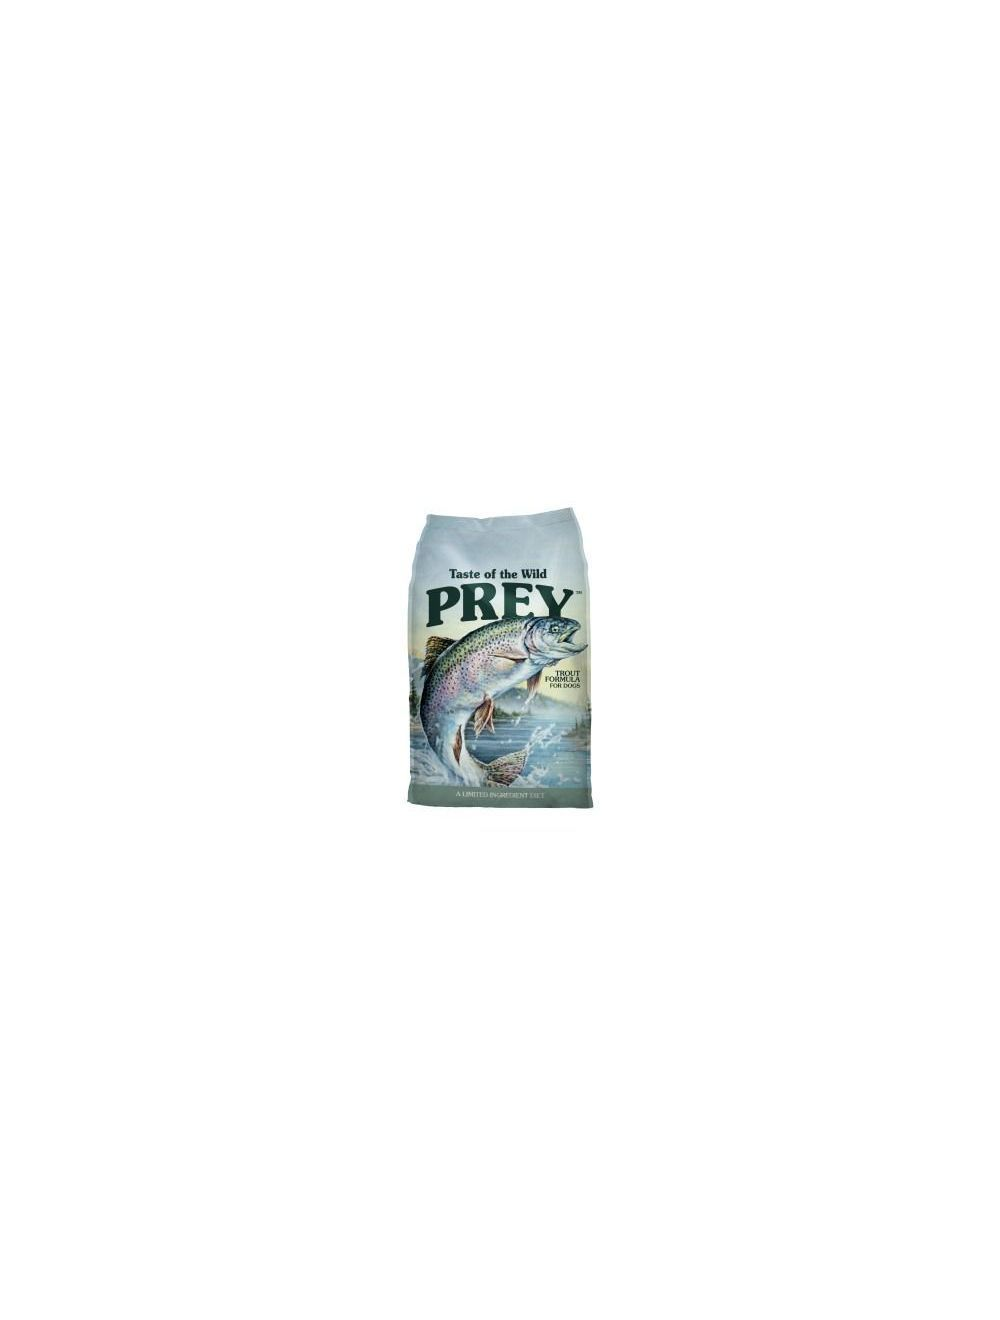 Taste Of The Wild Prey Trout Canine x 11.3Kg